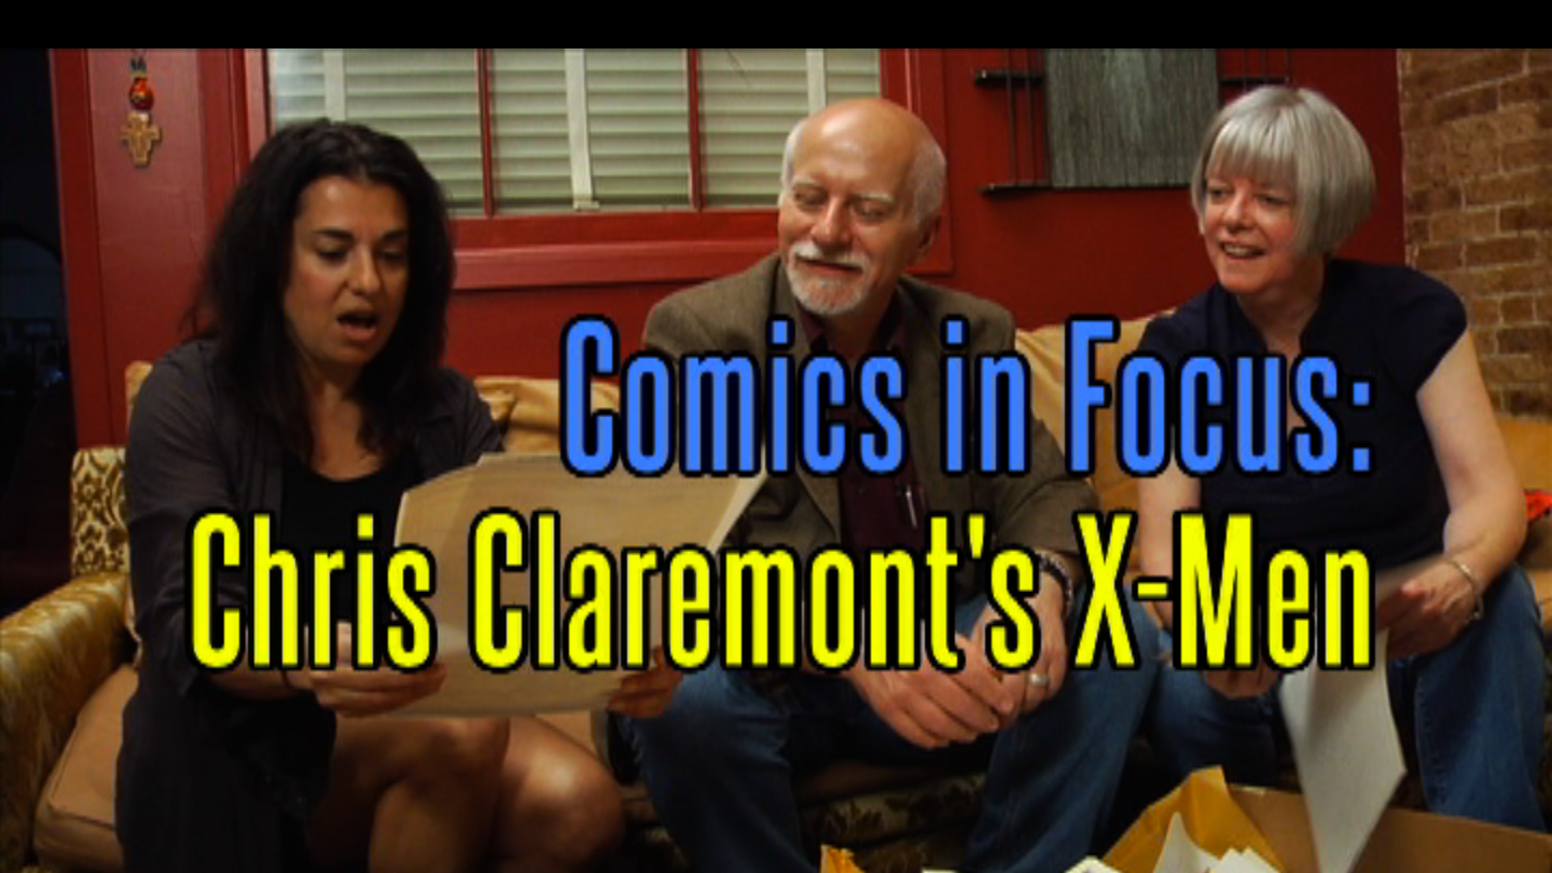 Explore Chris Claremont's historic X-Men comics with behind-the-scenes accounts from the comics professionals who created them.